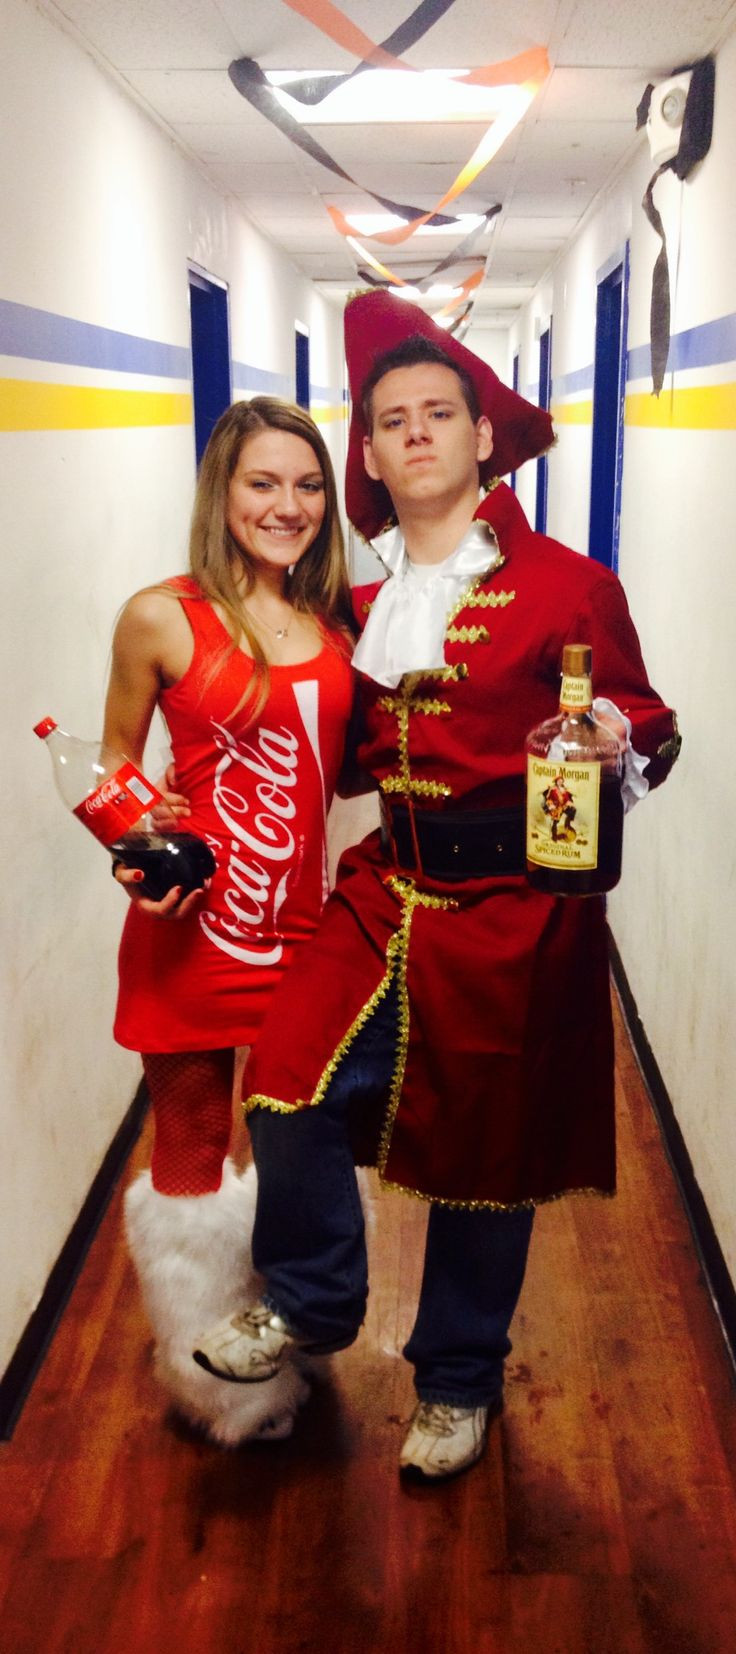 Best ideas about Creative DIY Costume . Save or Pin 52 best Halloween Party images on Pinterest Now.